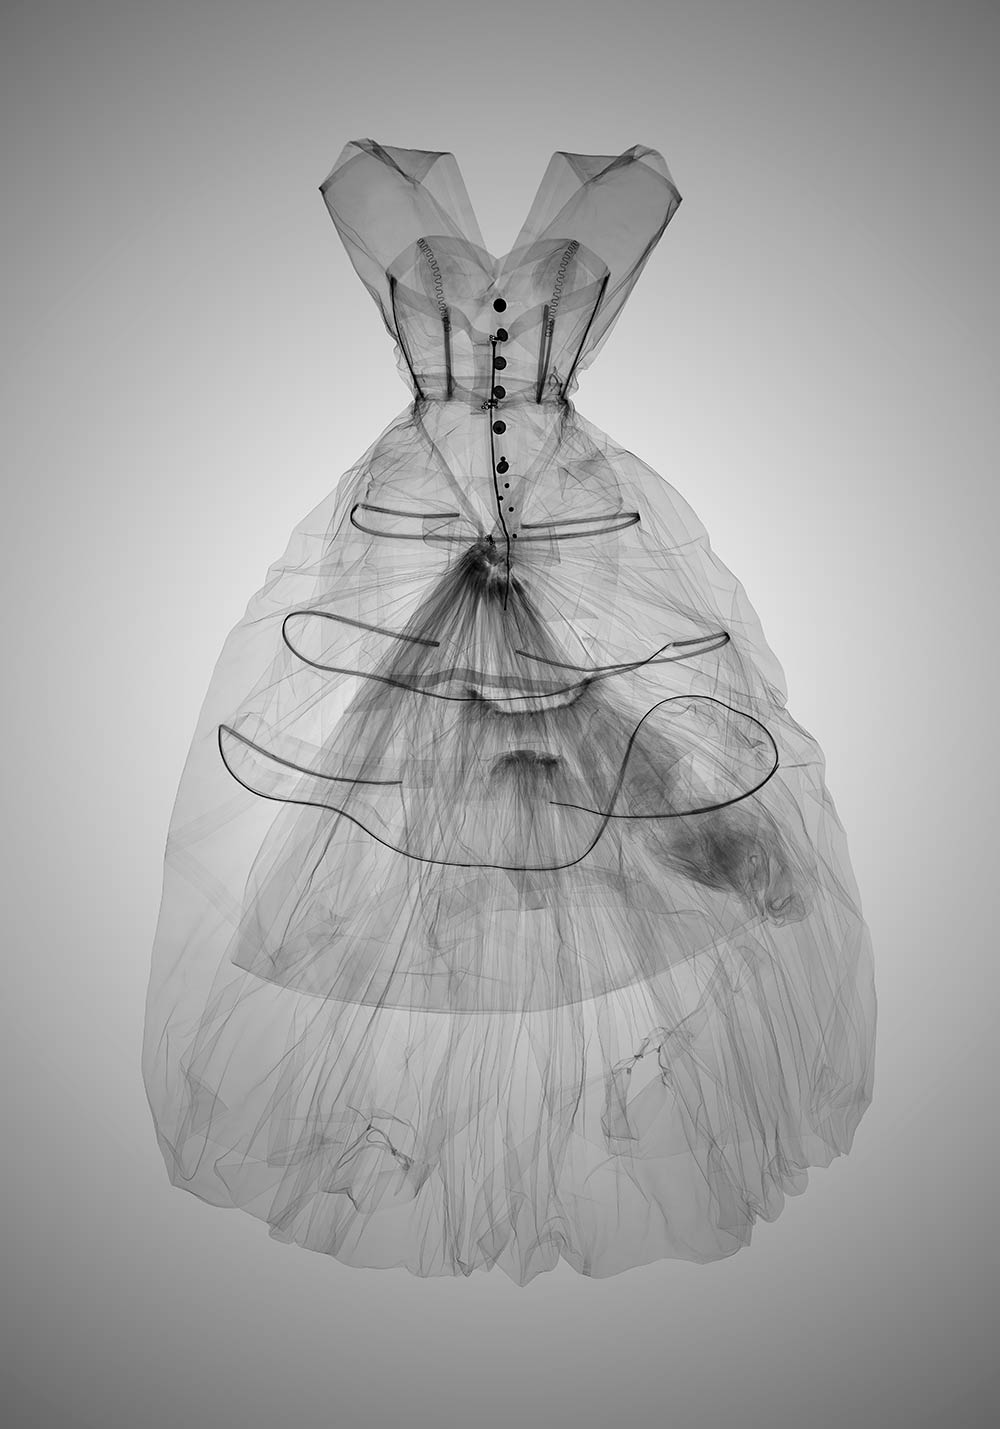 X-ray showing the boning and hooped skirt. X-ray photography by Nick Veasey, 2016 © Nick Veasey.